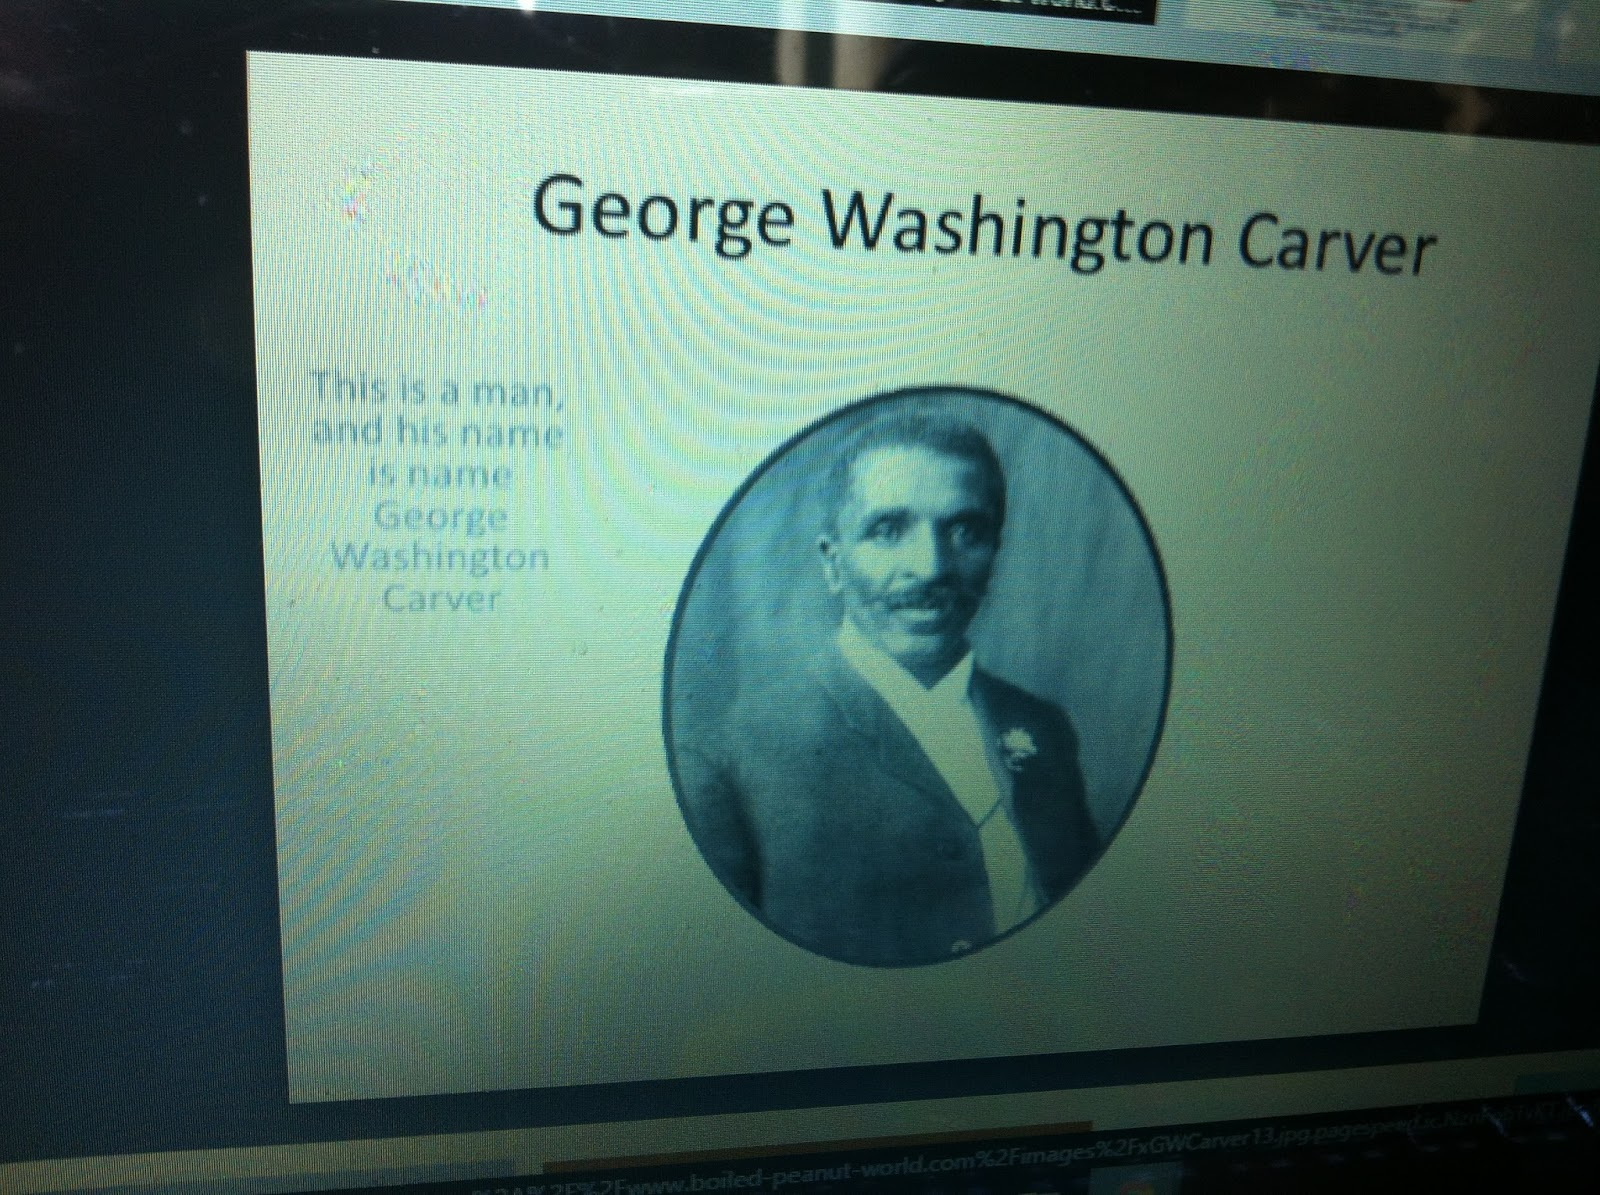 account of the life of george washington carver an american botanist and inventor